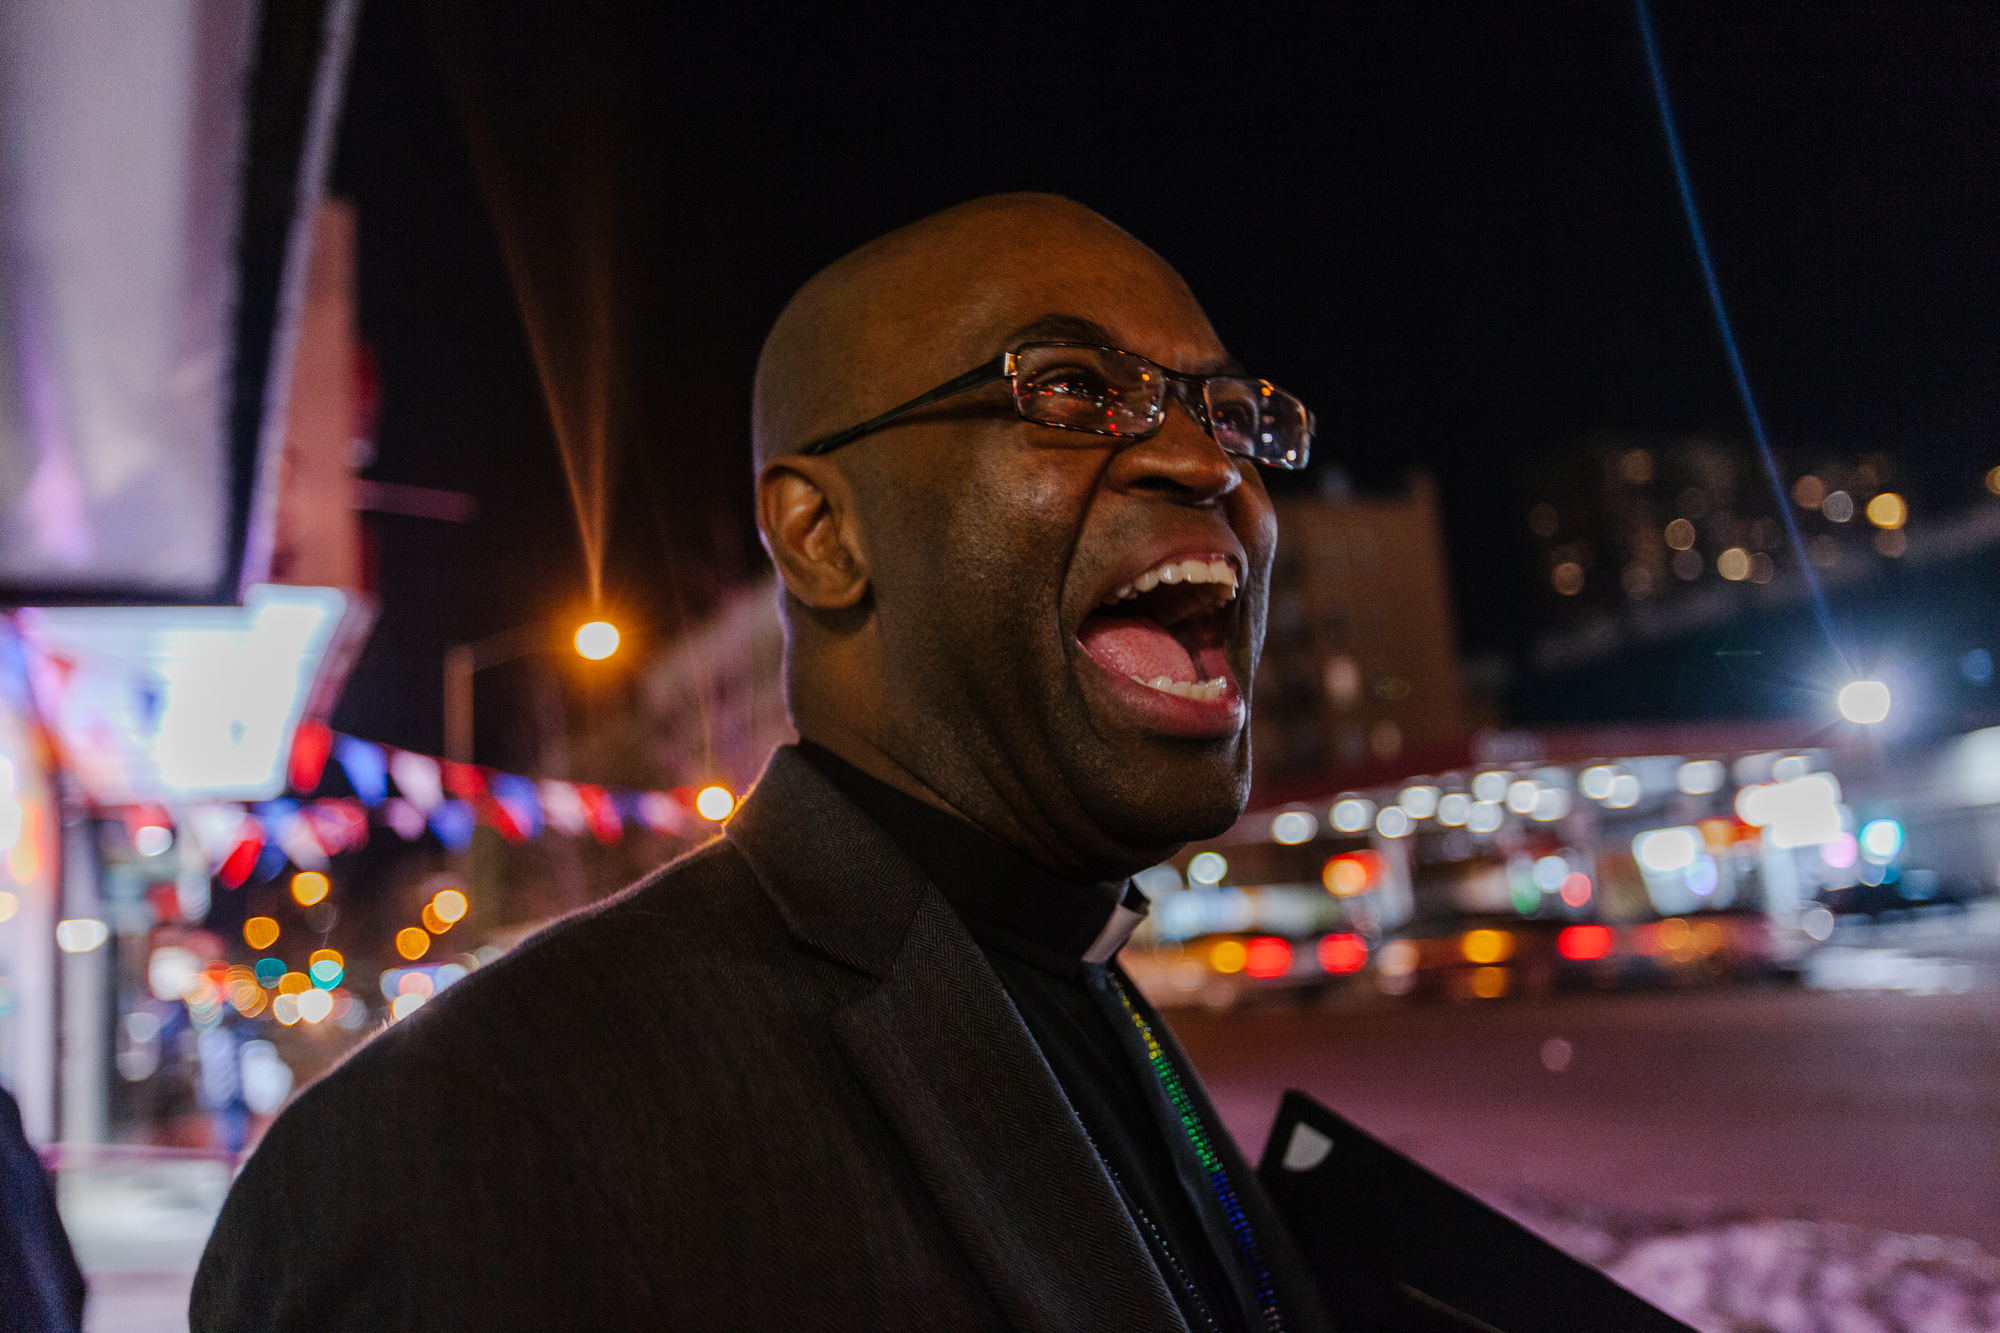 Rev. James laughs after receiving an award from Al Sharpton's National Action Network for Dusenbury's service to the LGBT community.